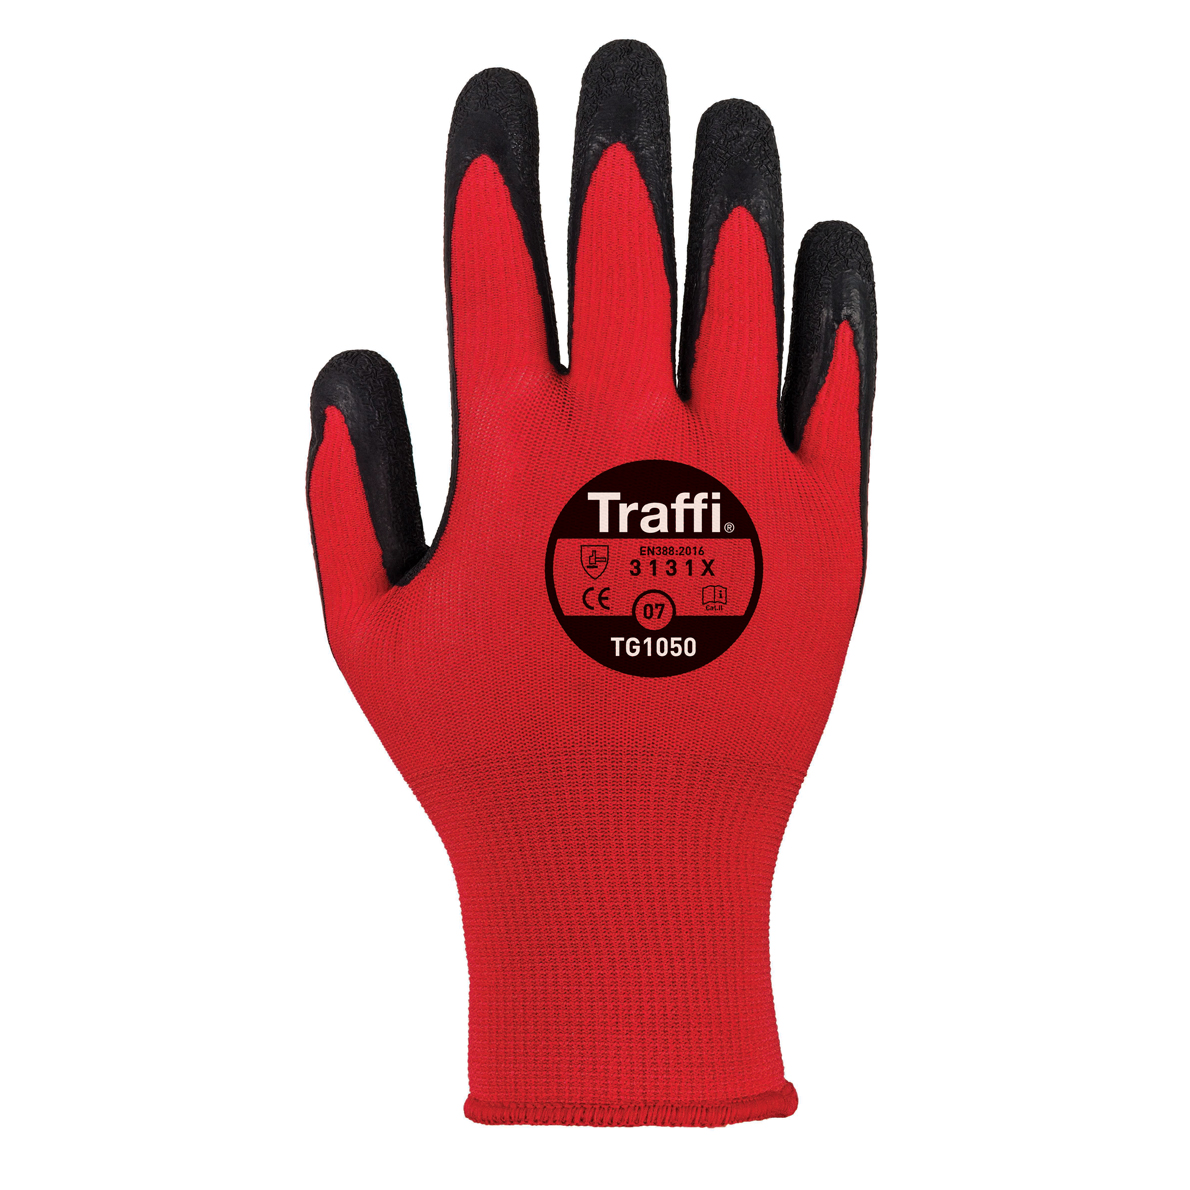 Size 8 Centric Cut 1 Red Nylon Shell X-dura Latex Palm Coating (10 Pack)